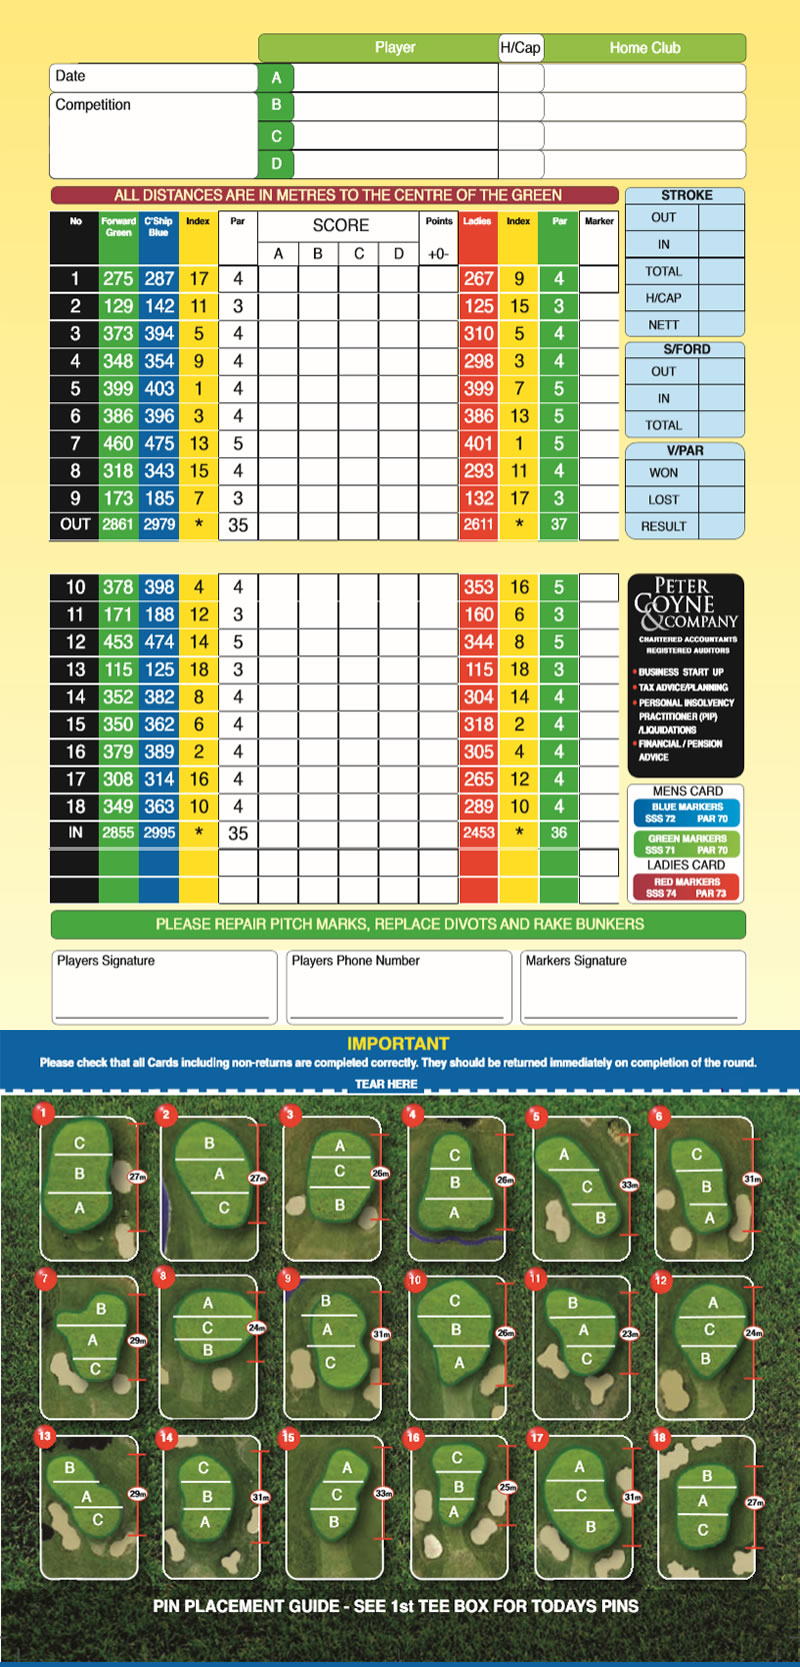 Galway Golf Course Course Card